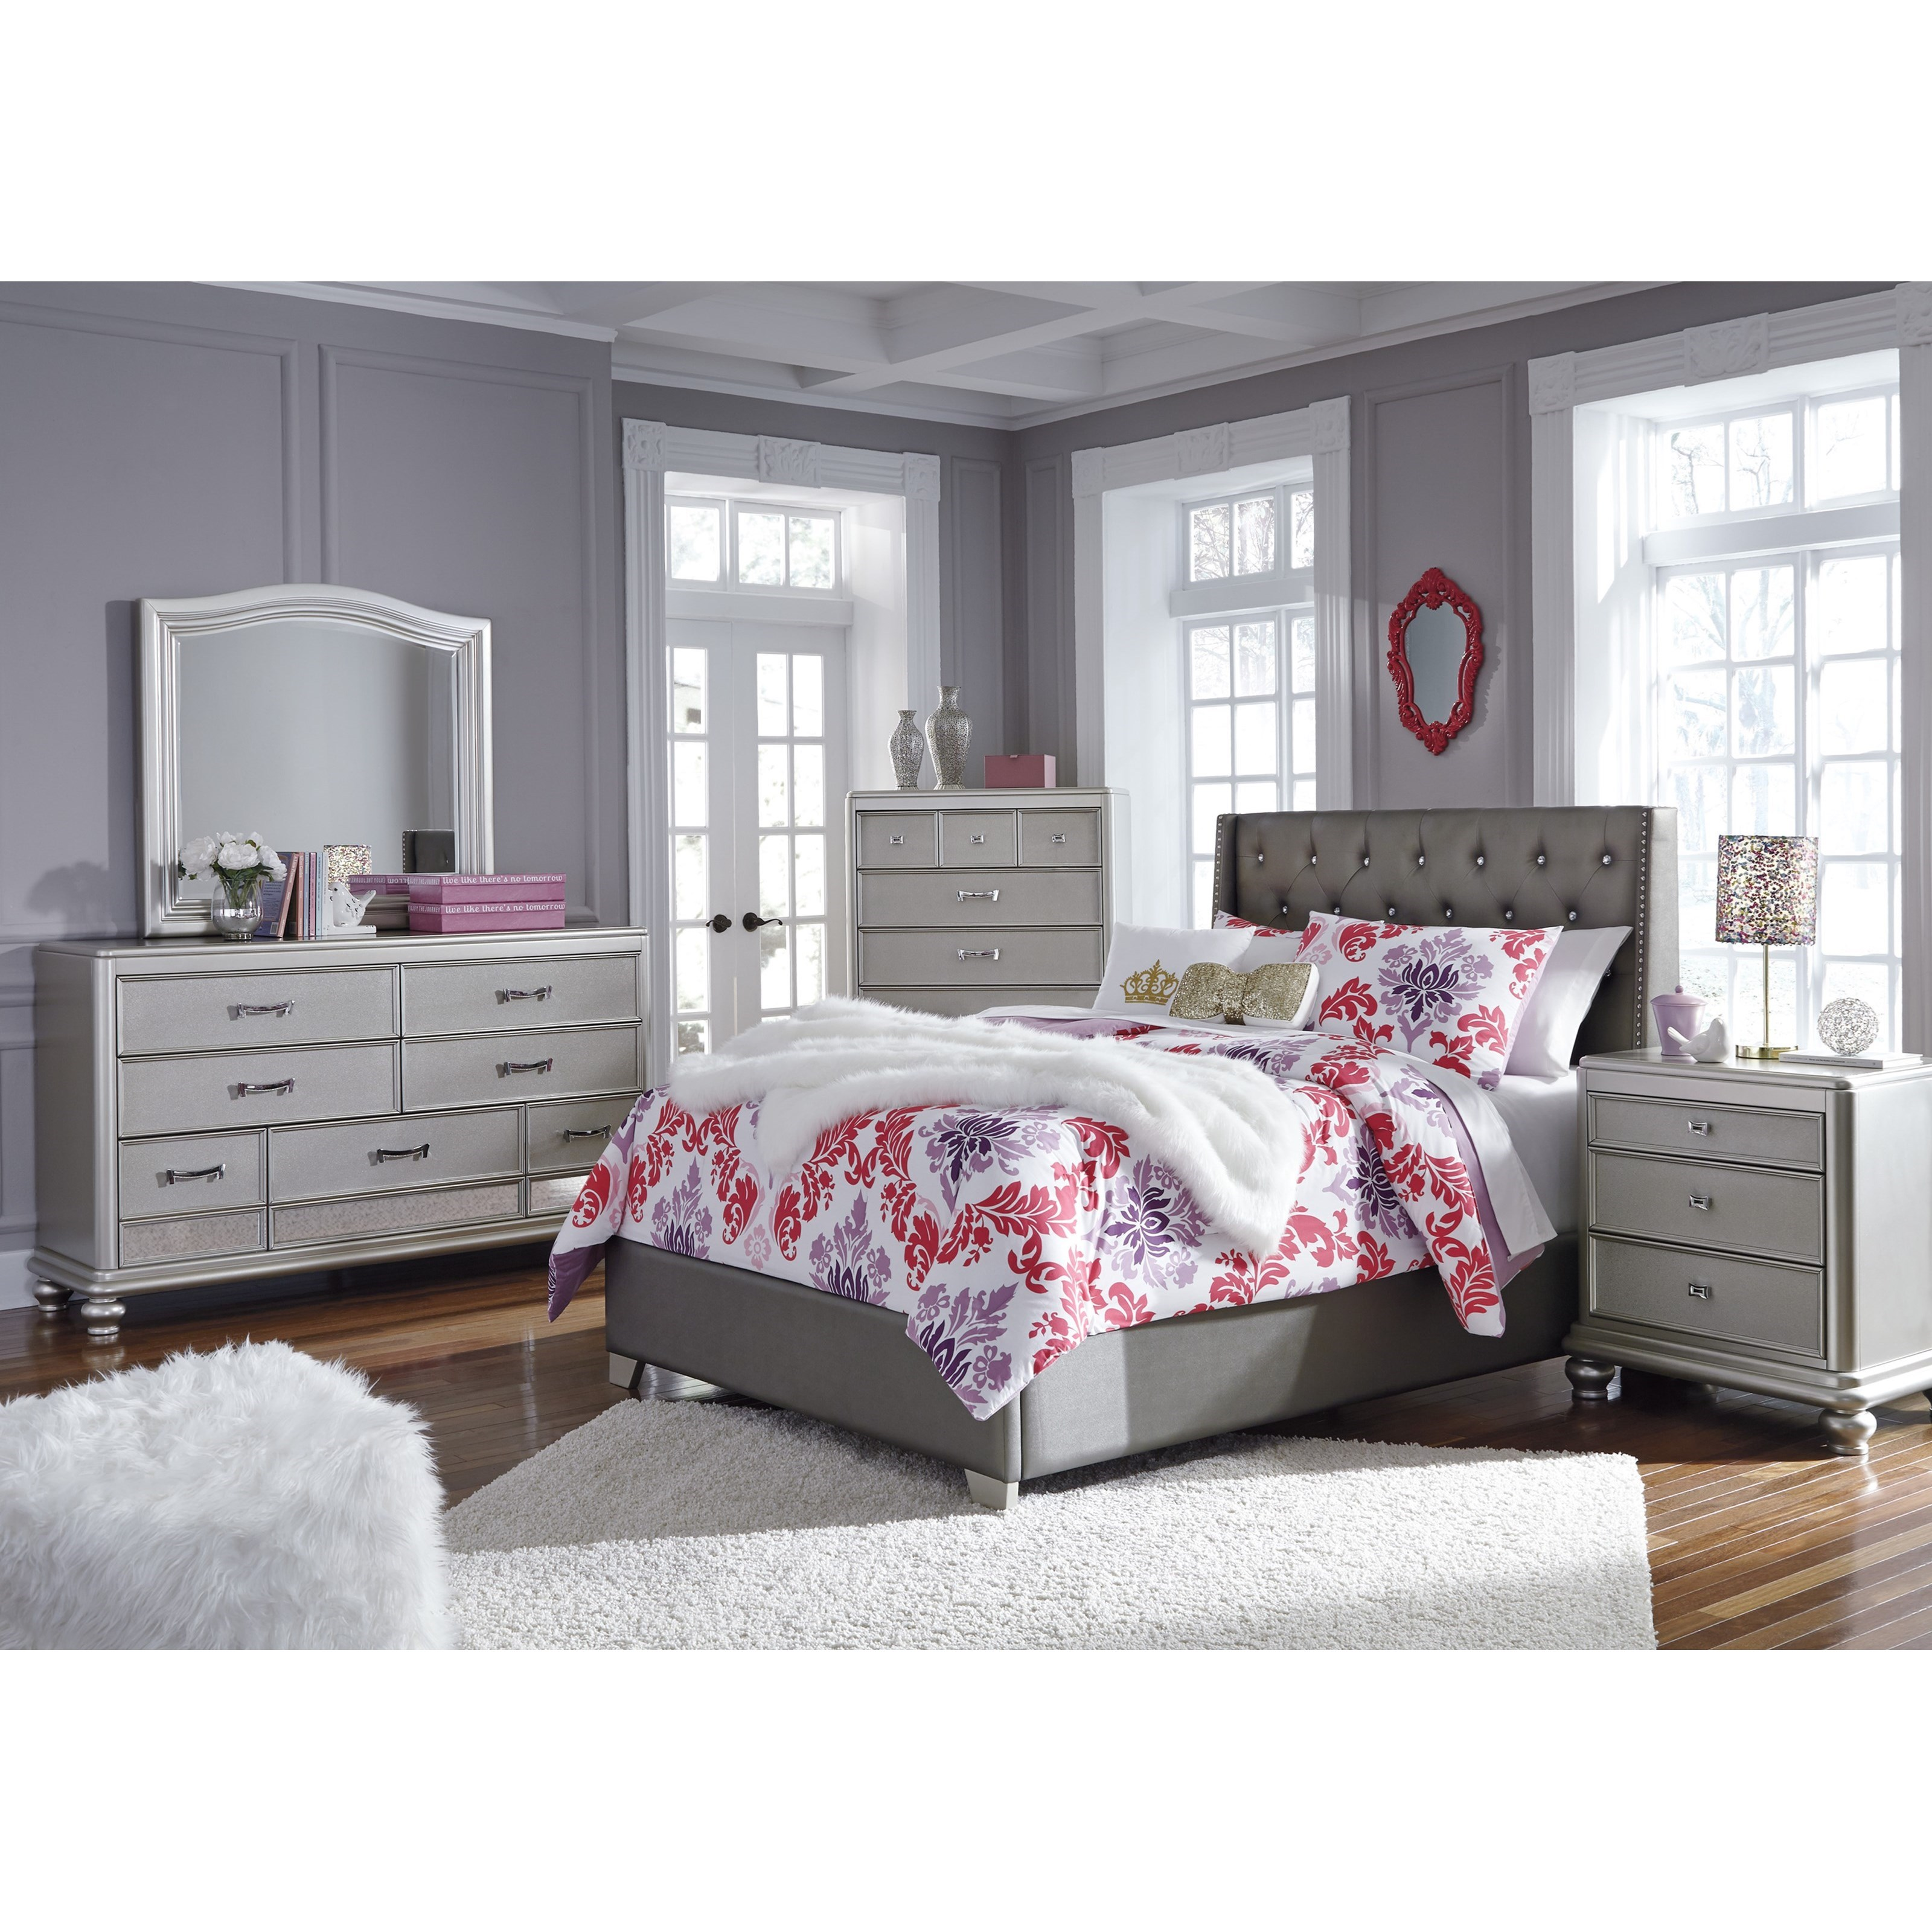 Coralayne Full Bedroom Group by Signature Design by Ashley at Zak's Warehouse Clearance Center